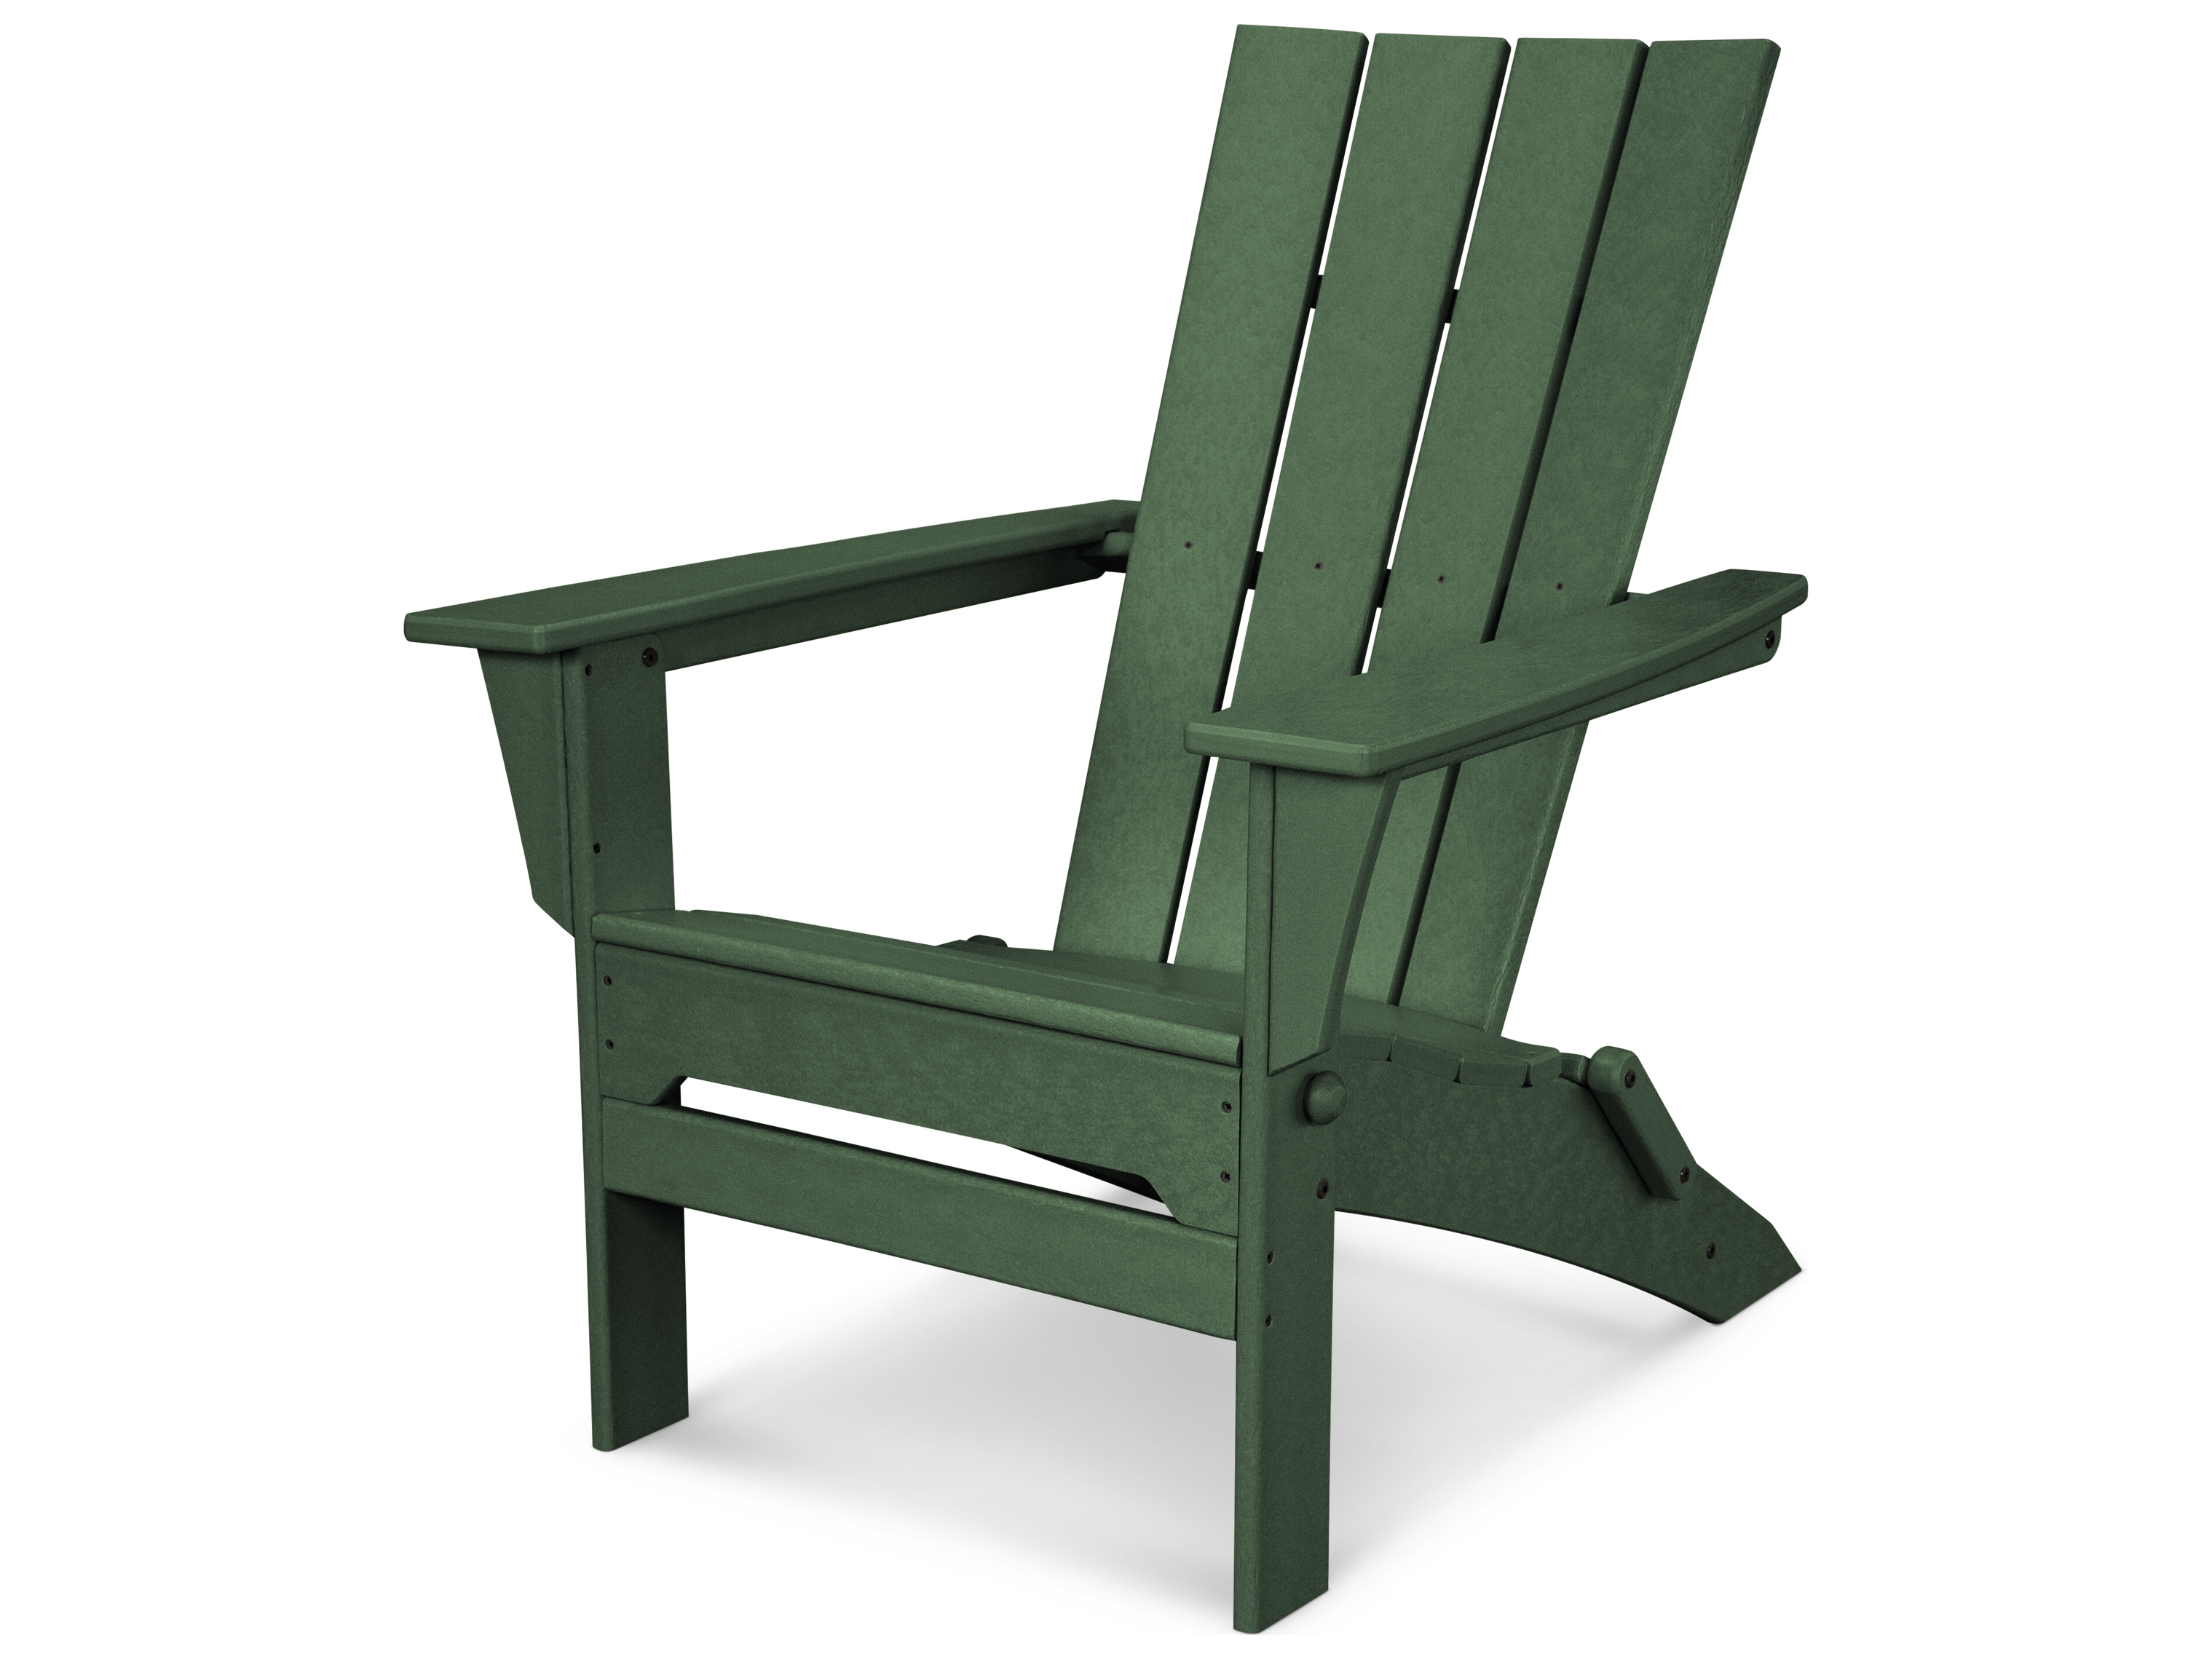 Plastic Folding Lawn Chairs Polywood Quattro Recycled Plastic Folding Adirondack